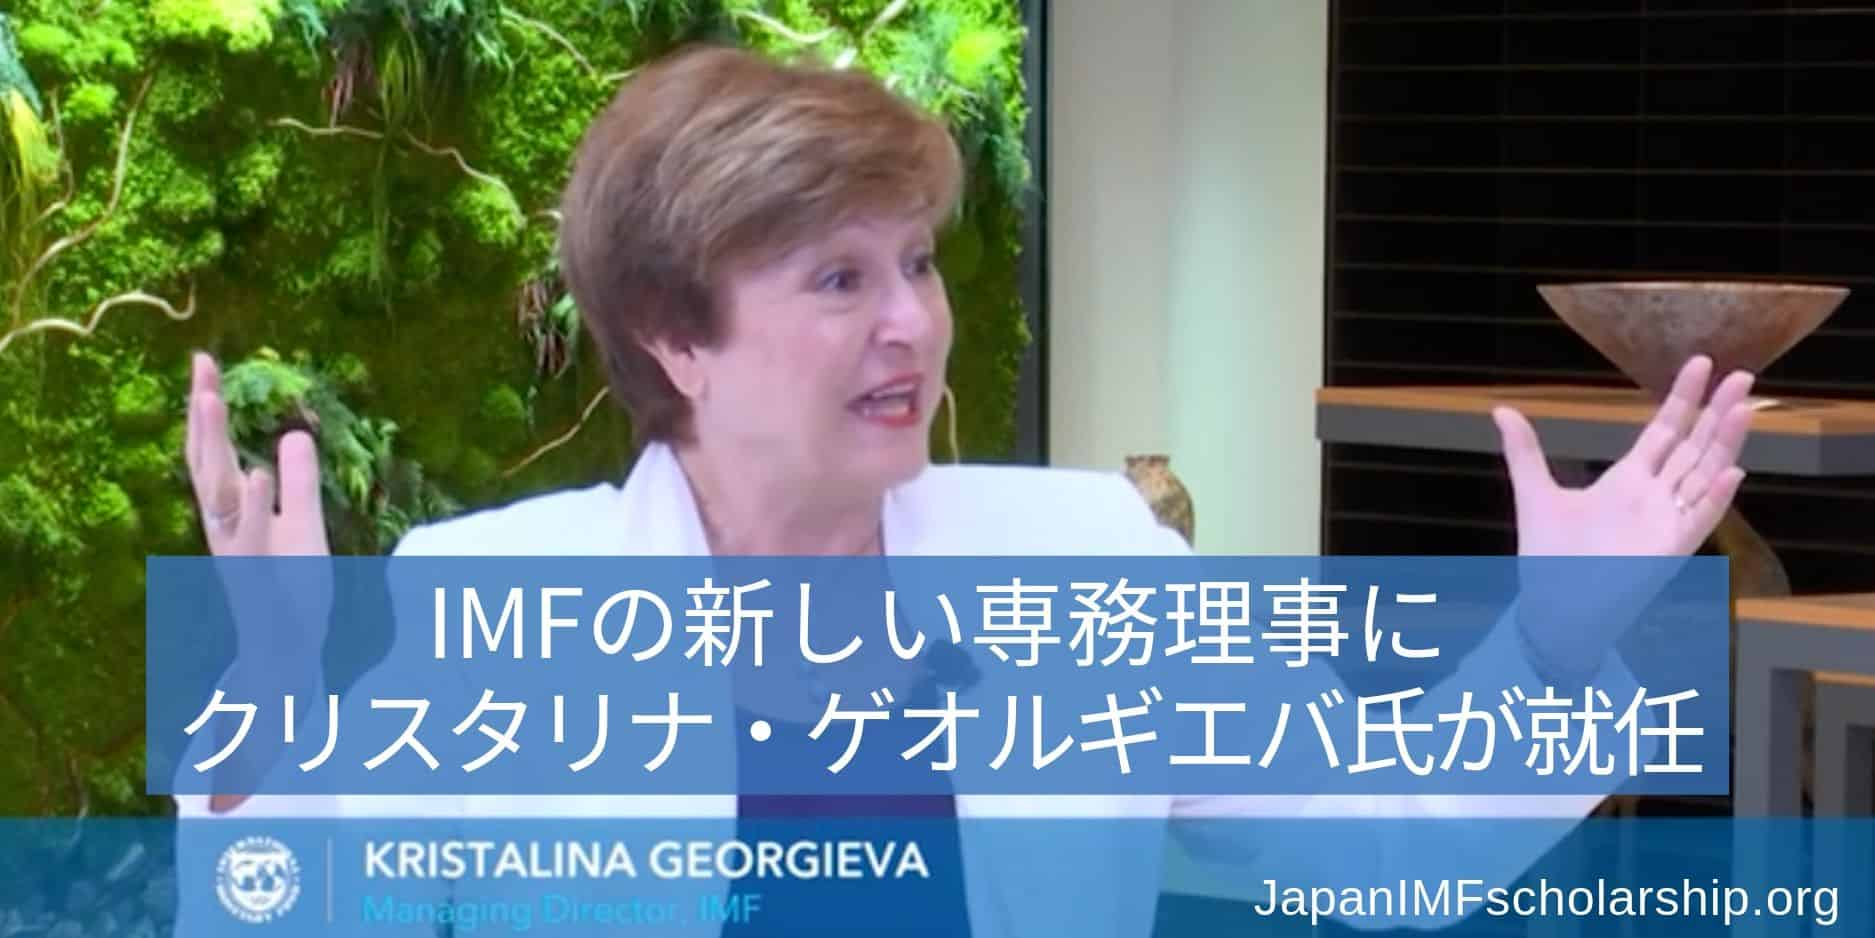 jisp web-fb the imf's new managing director Kristalina Georgieva